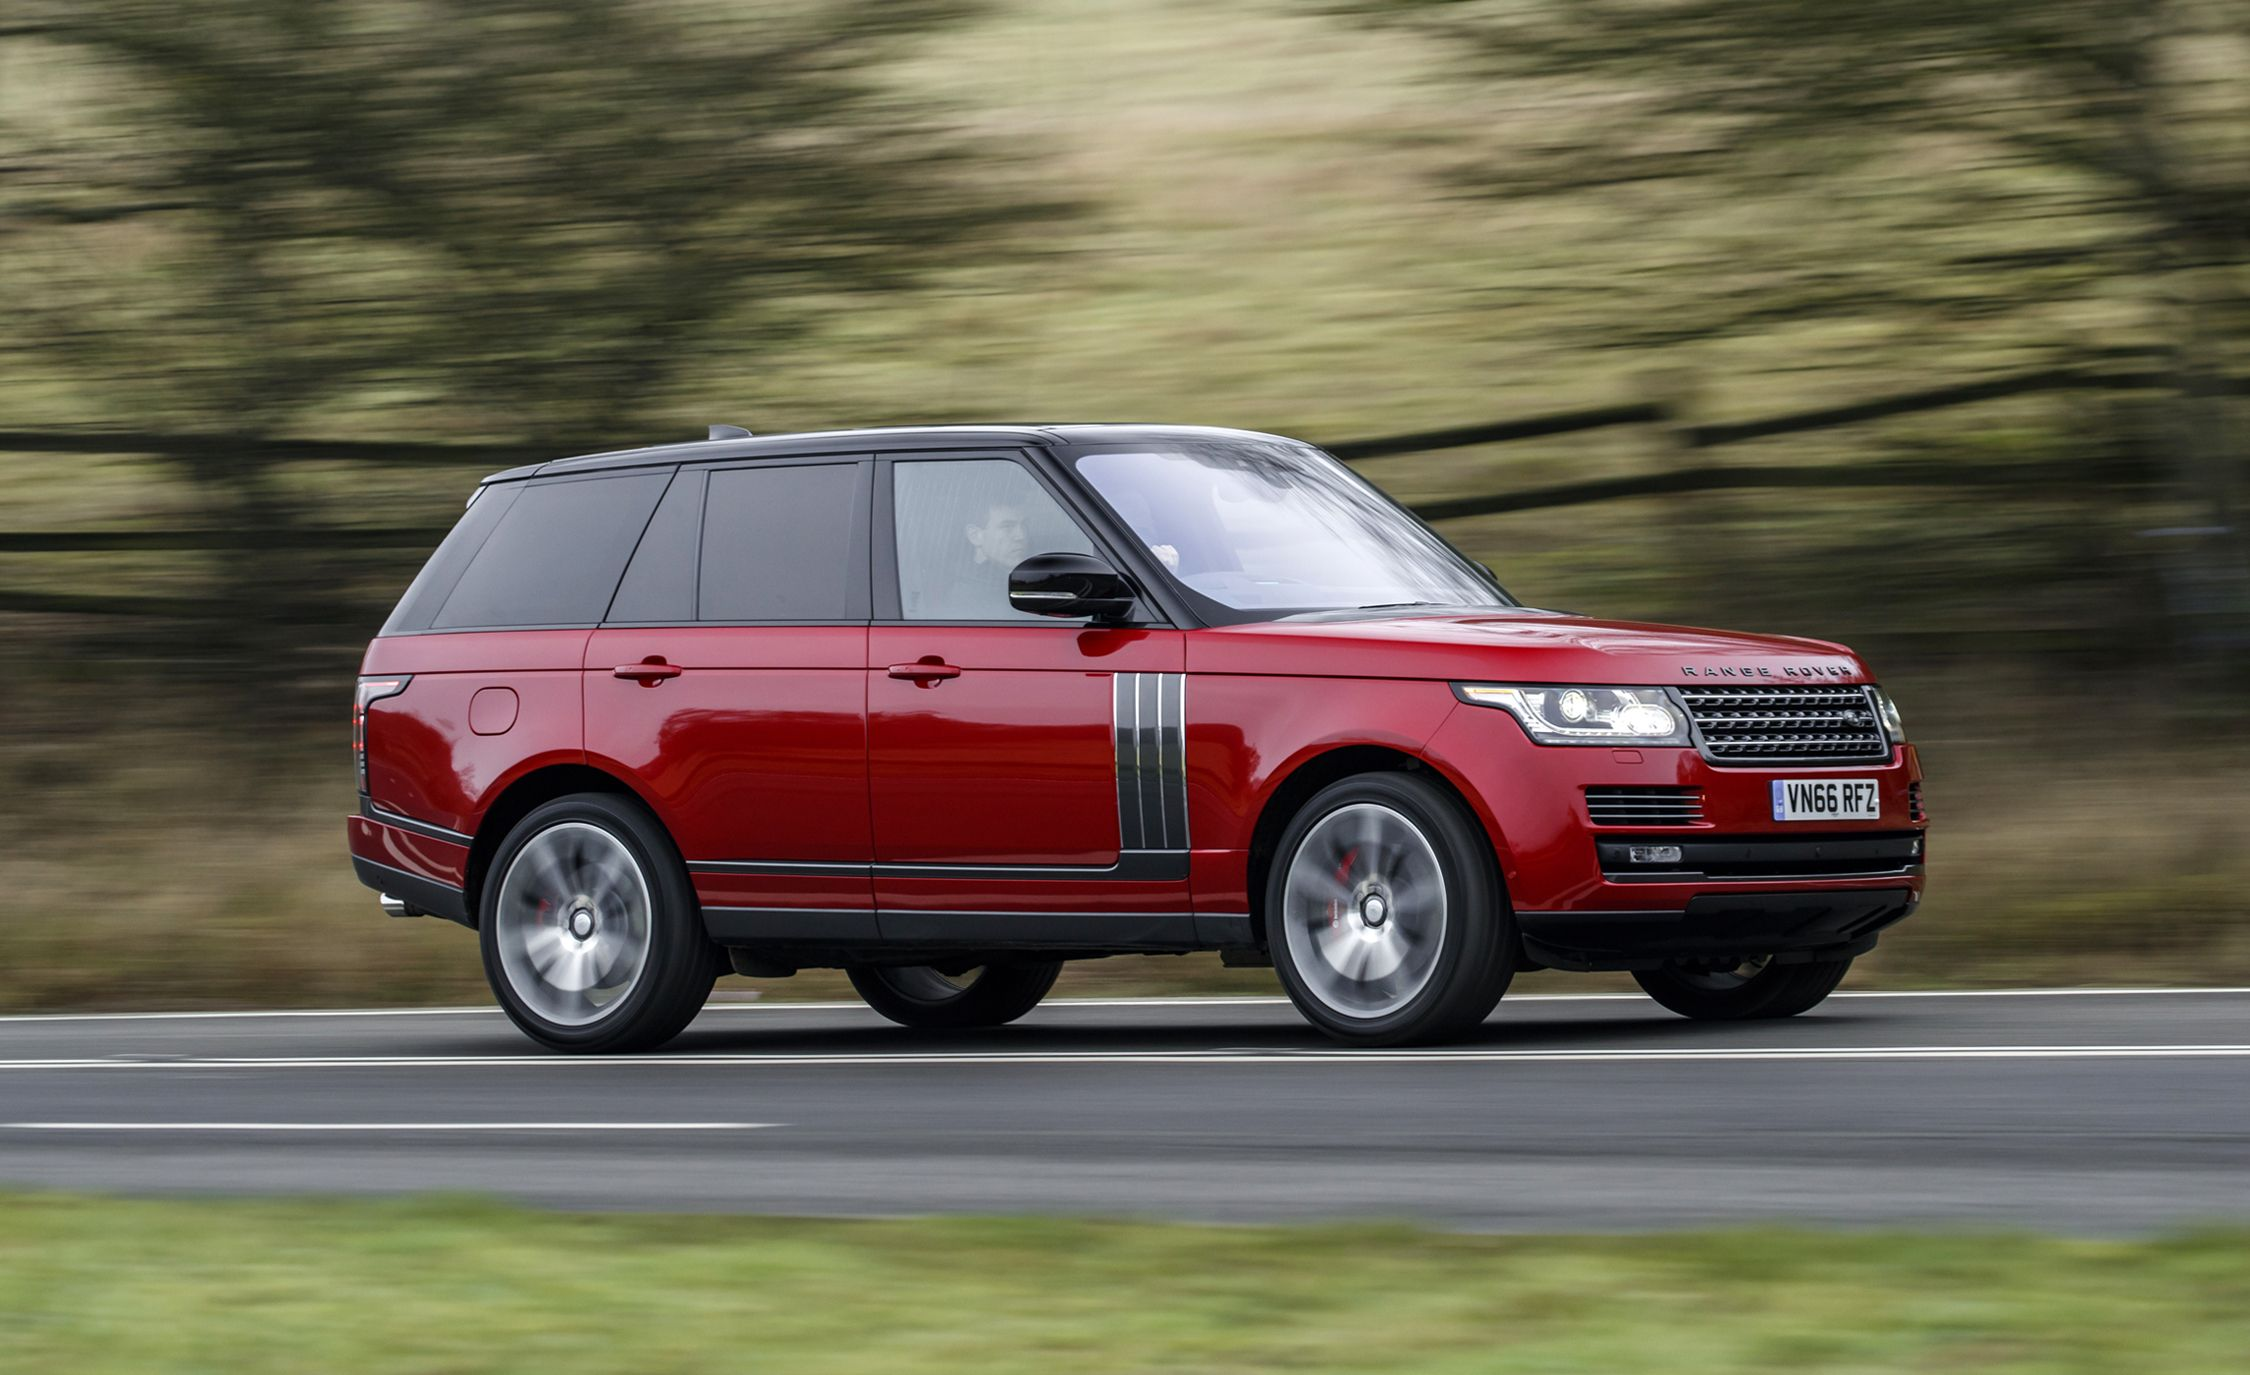 2017 Range Rover SVAutobiography Dynamic – Review – Car and Driver